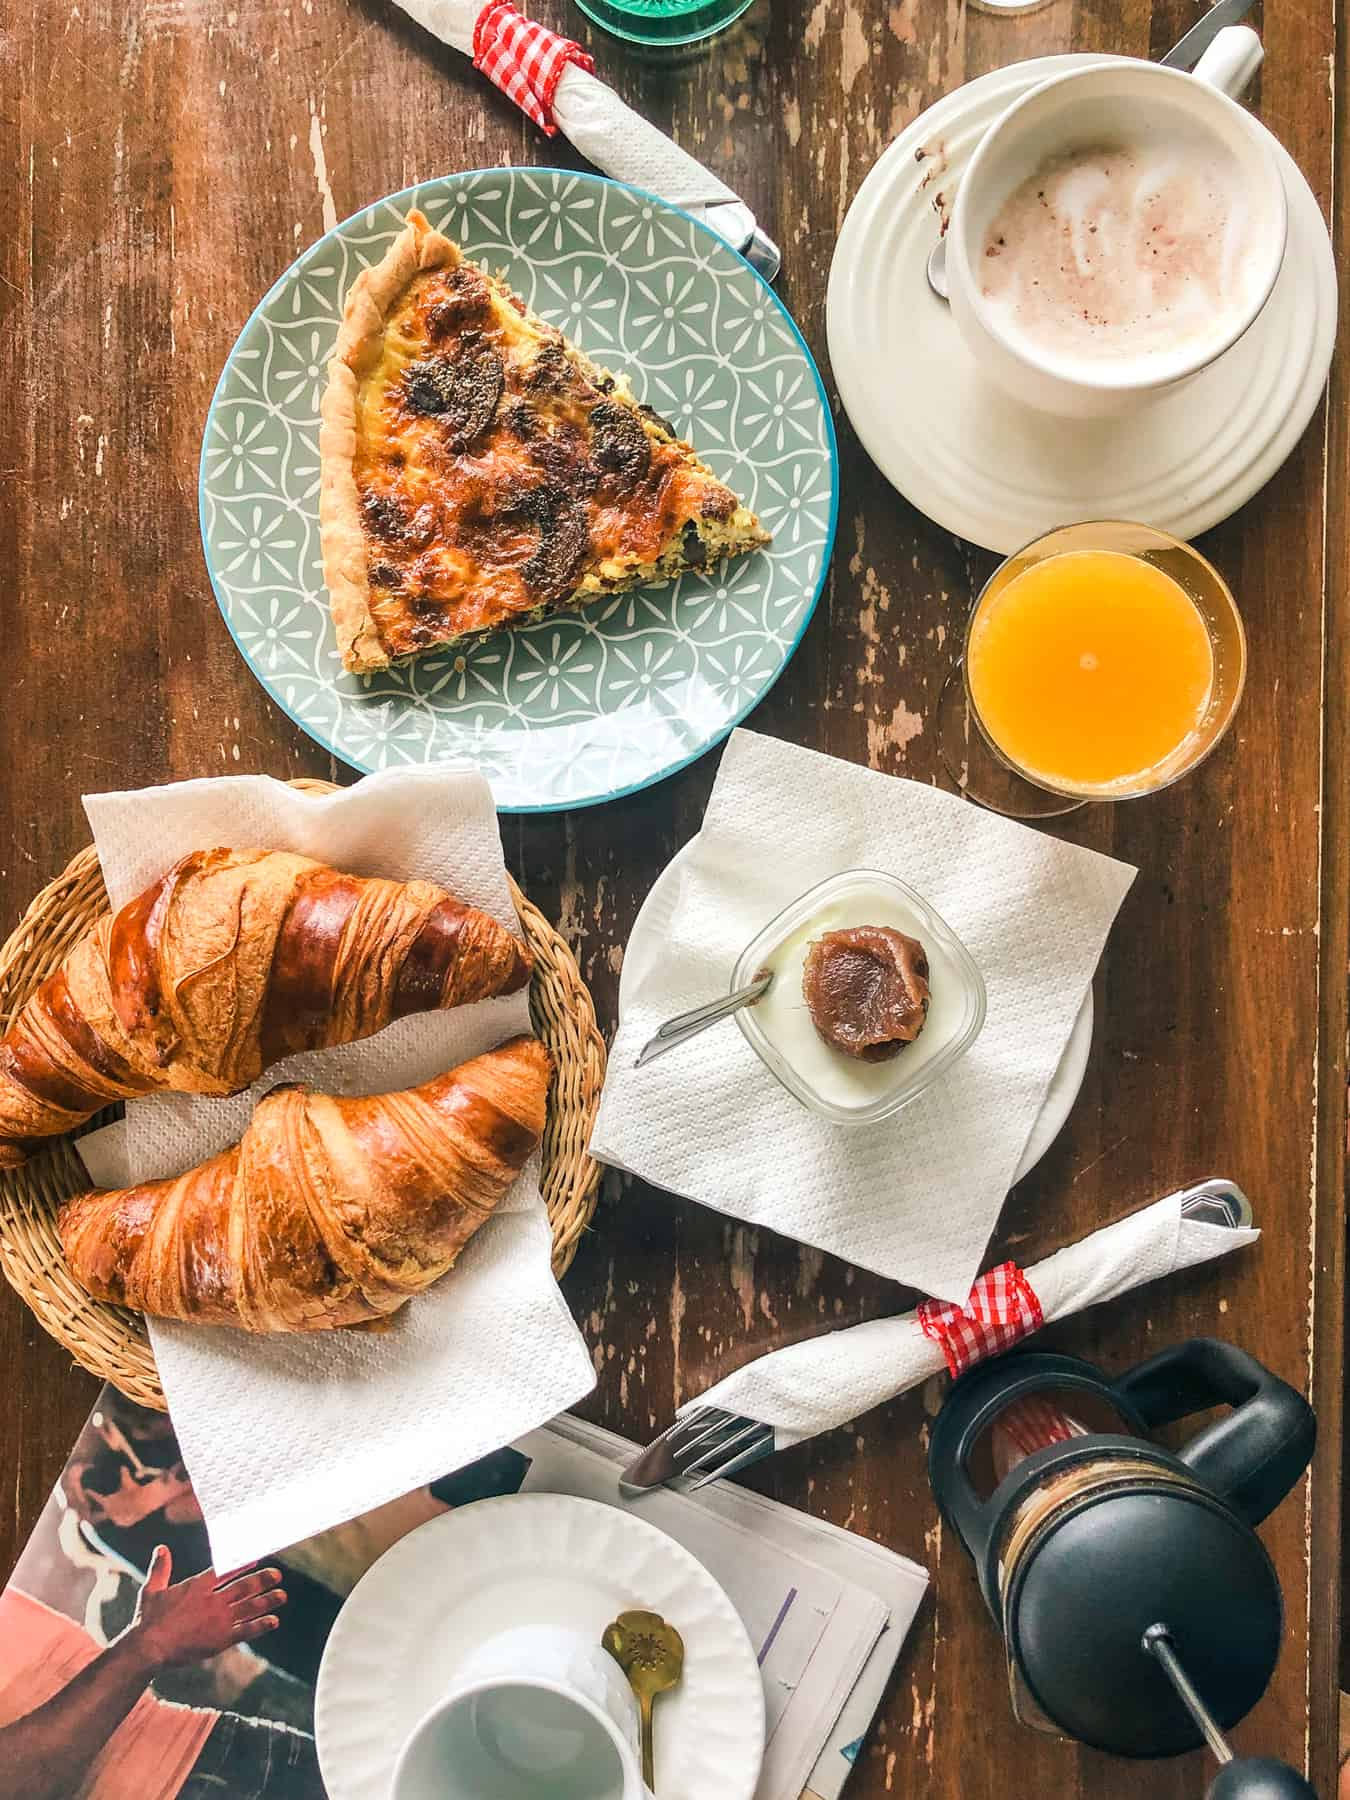 Breakfast consisting of yogurt with chestnut cream, croissants, quiche, juice, and coffee is laid out on a wooden table.